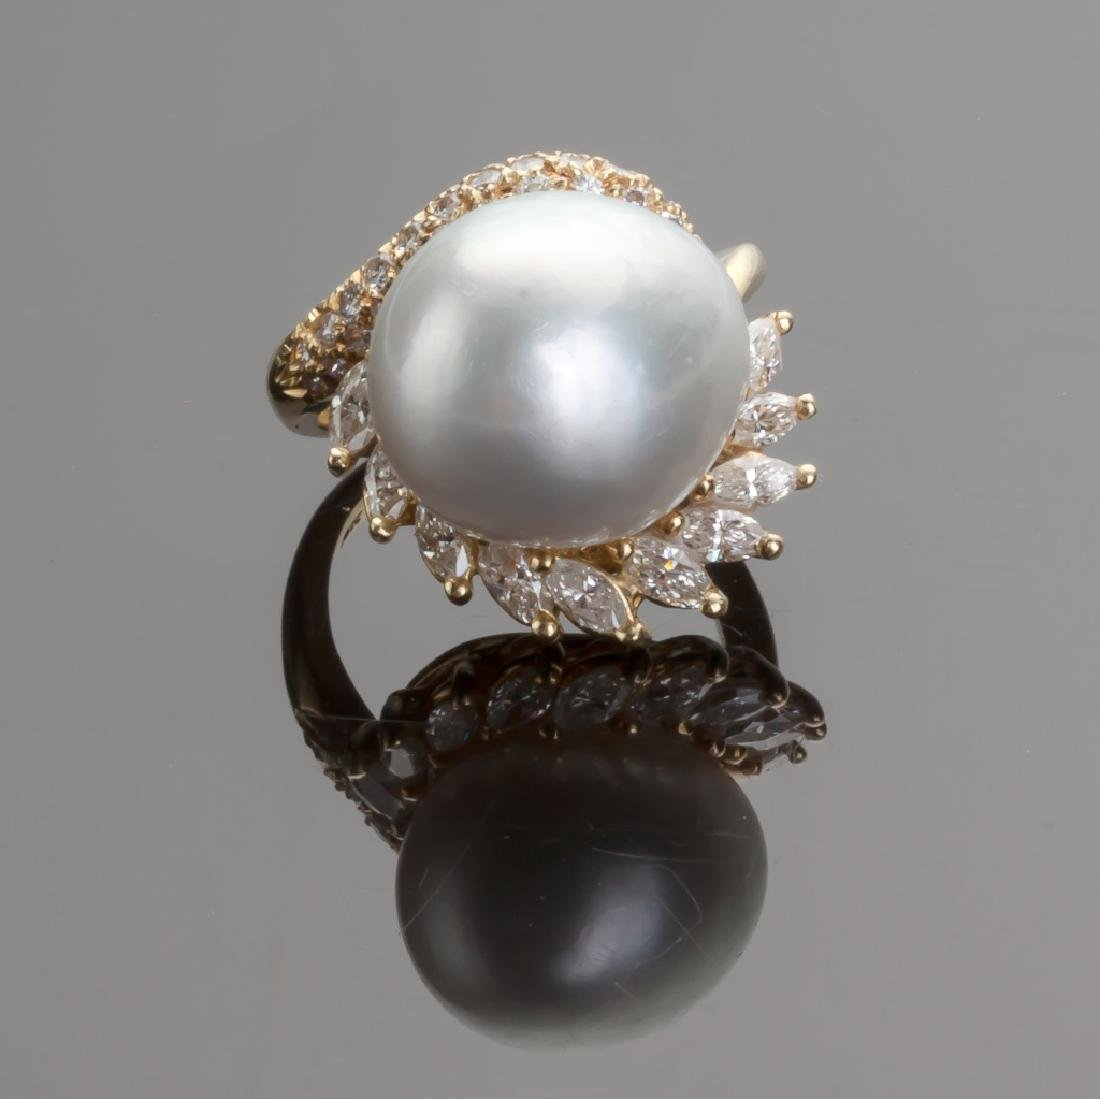 Lady's South Sea Pearl Ring